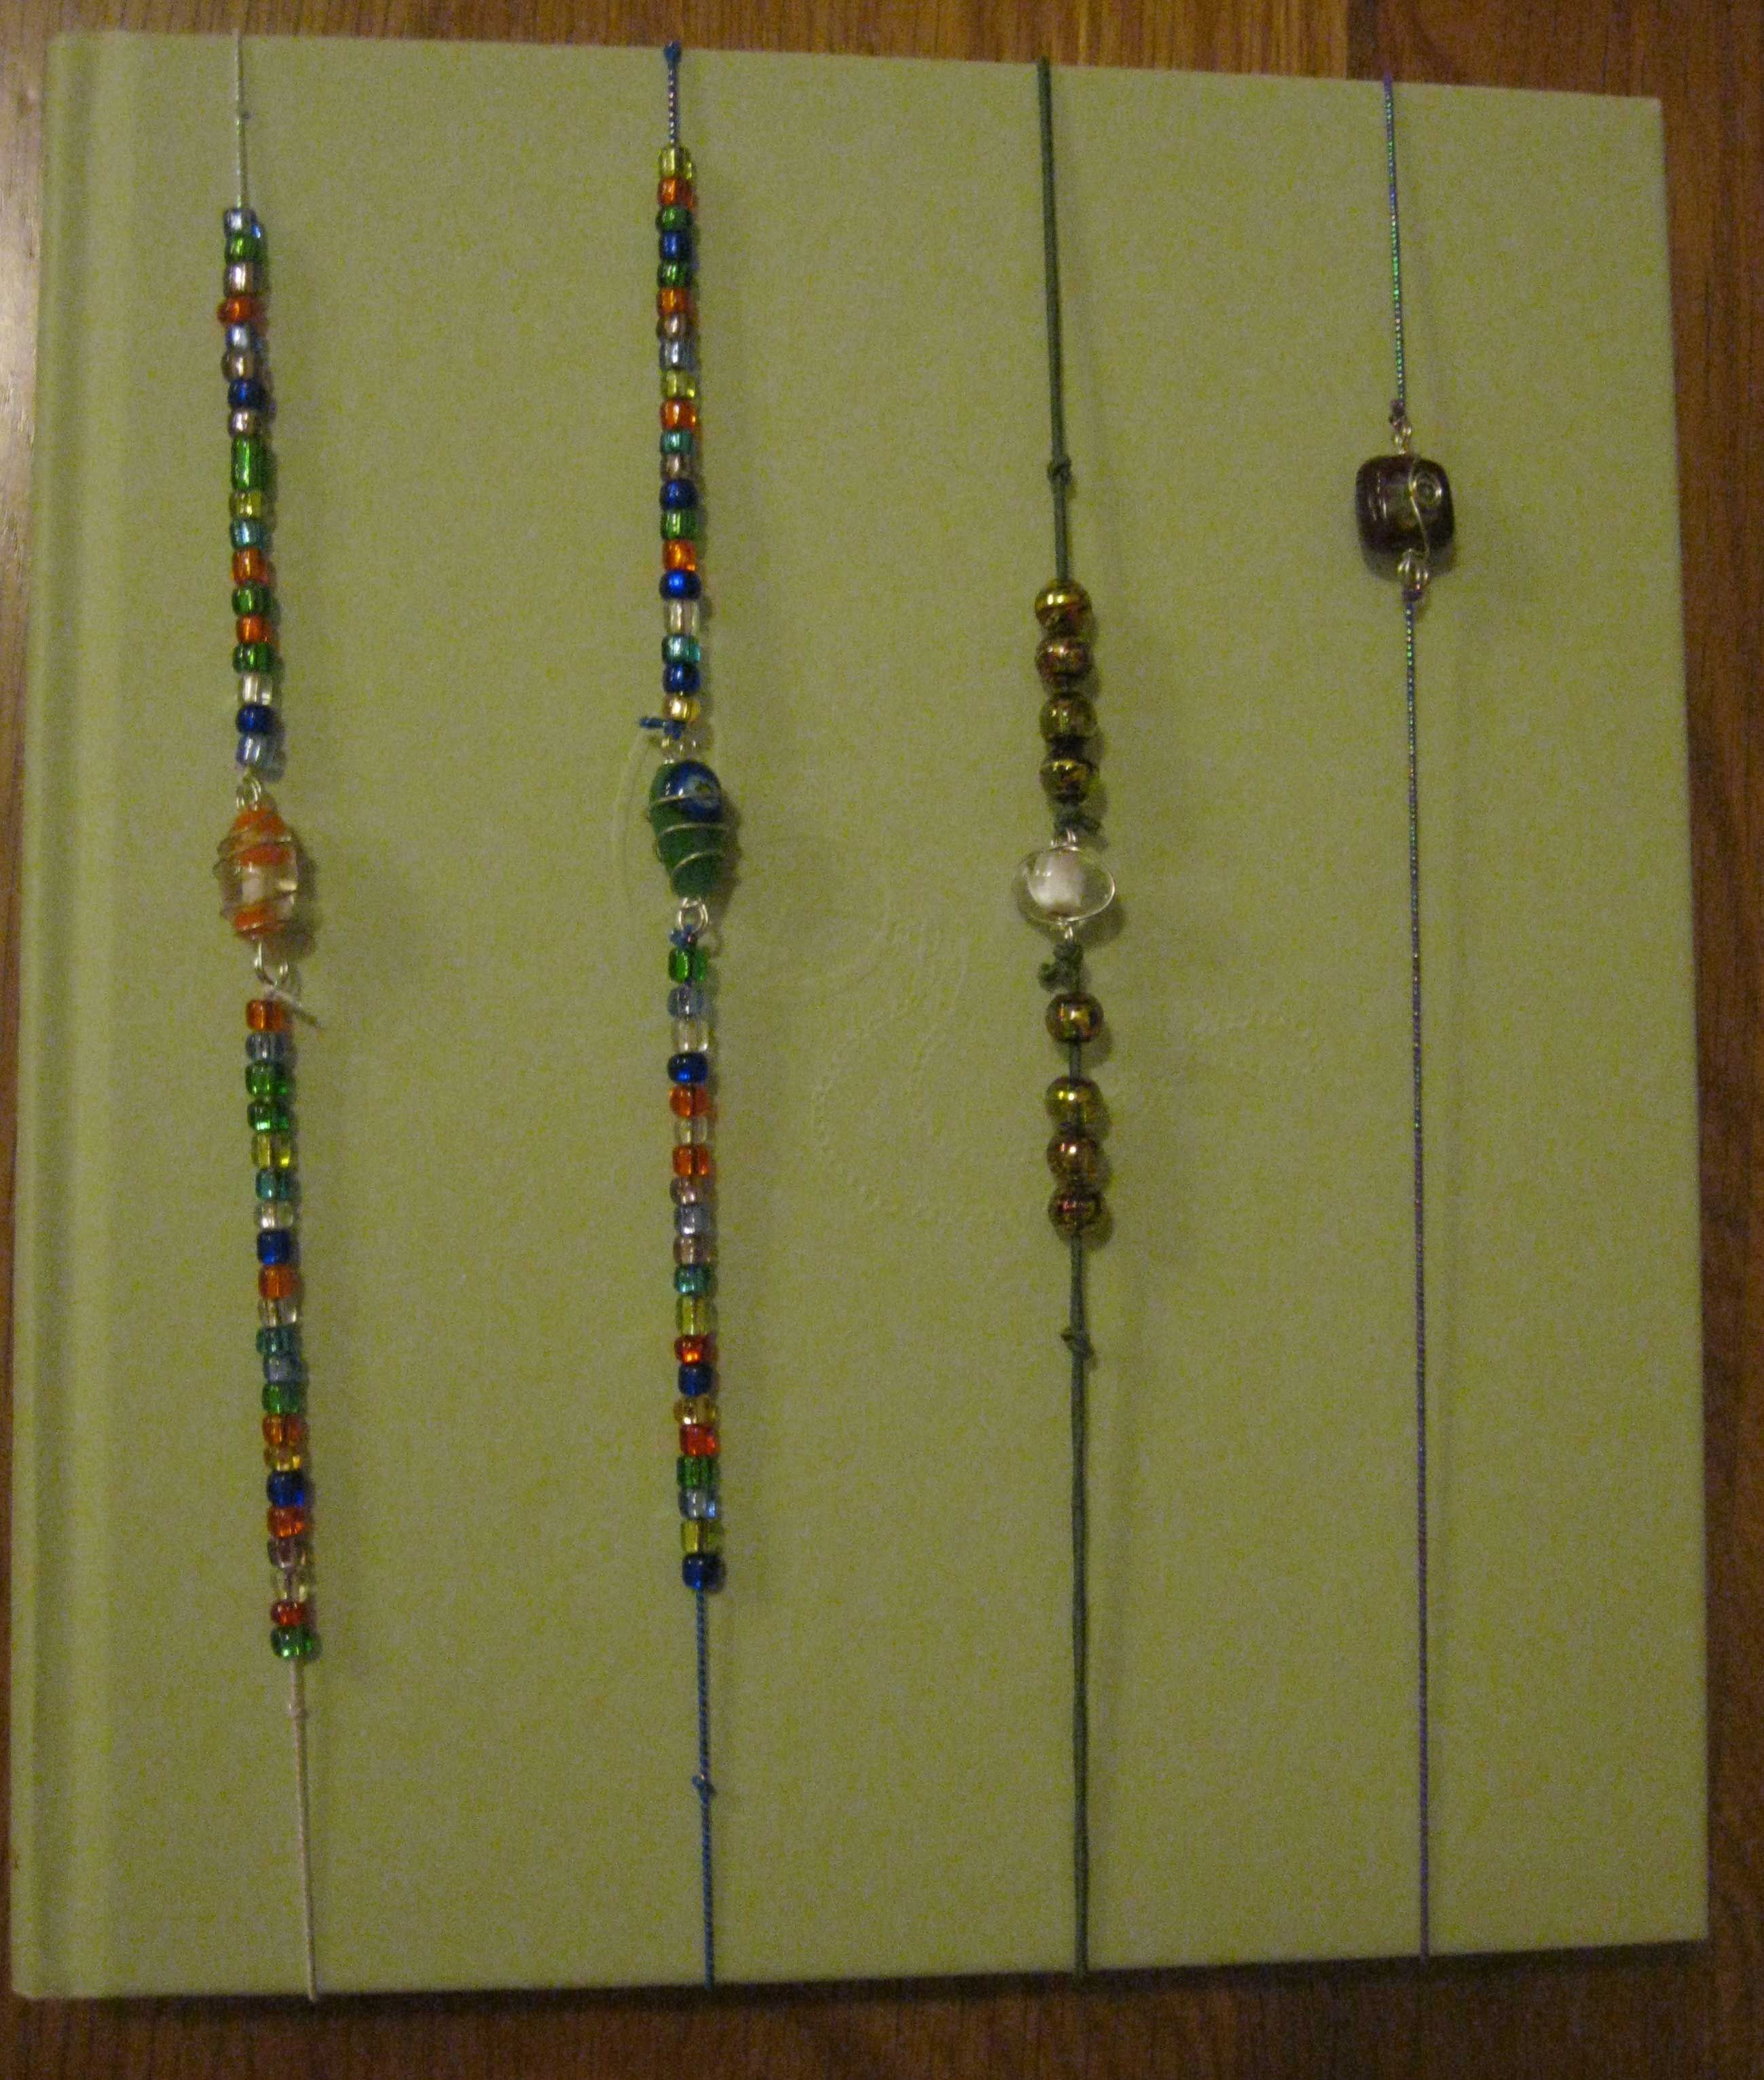 Add a Bead Bookmarks Jewellery Crafting Gifts Supplies Bead Wholesale Suppliers